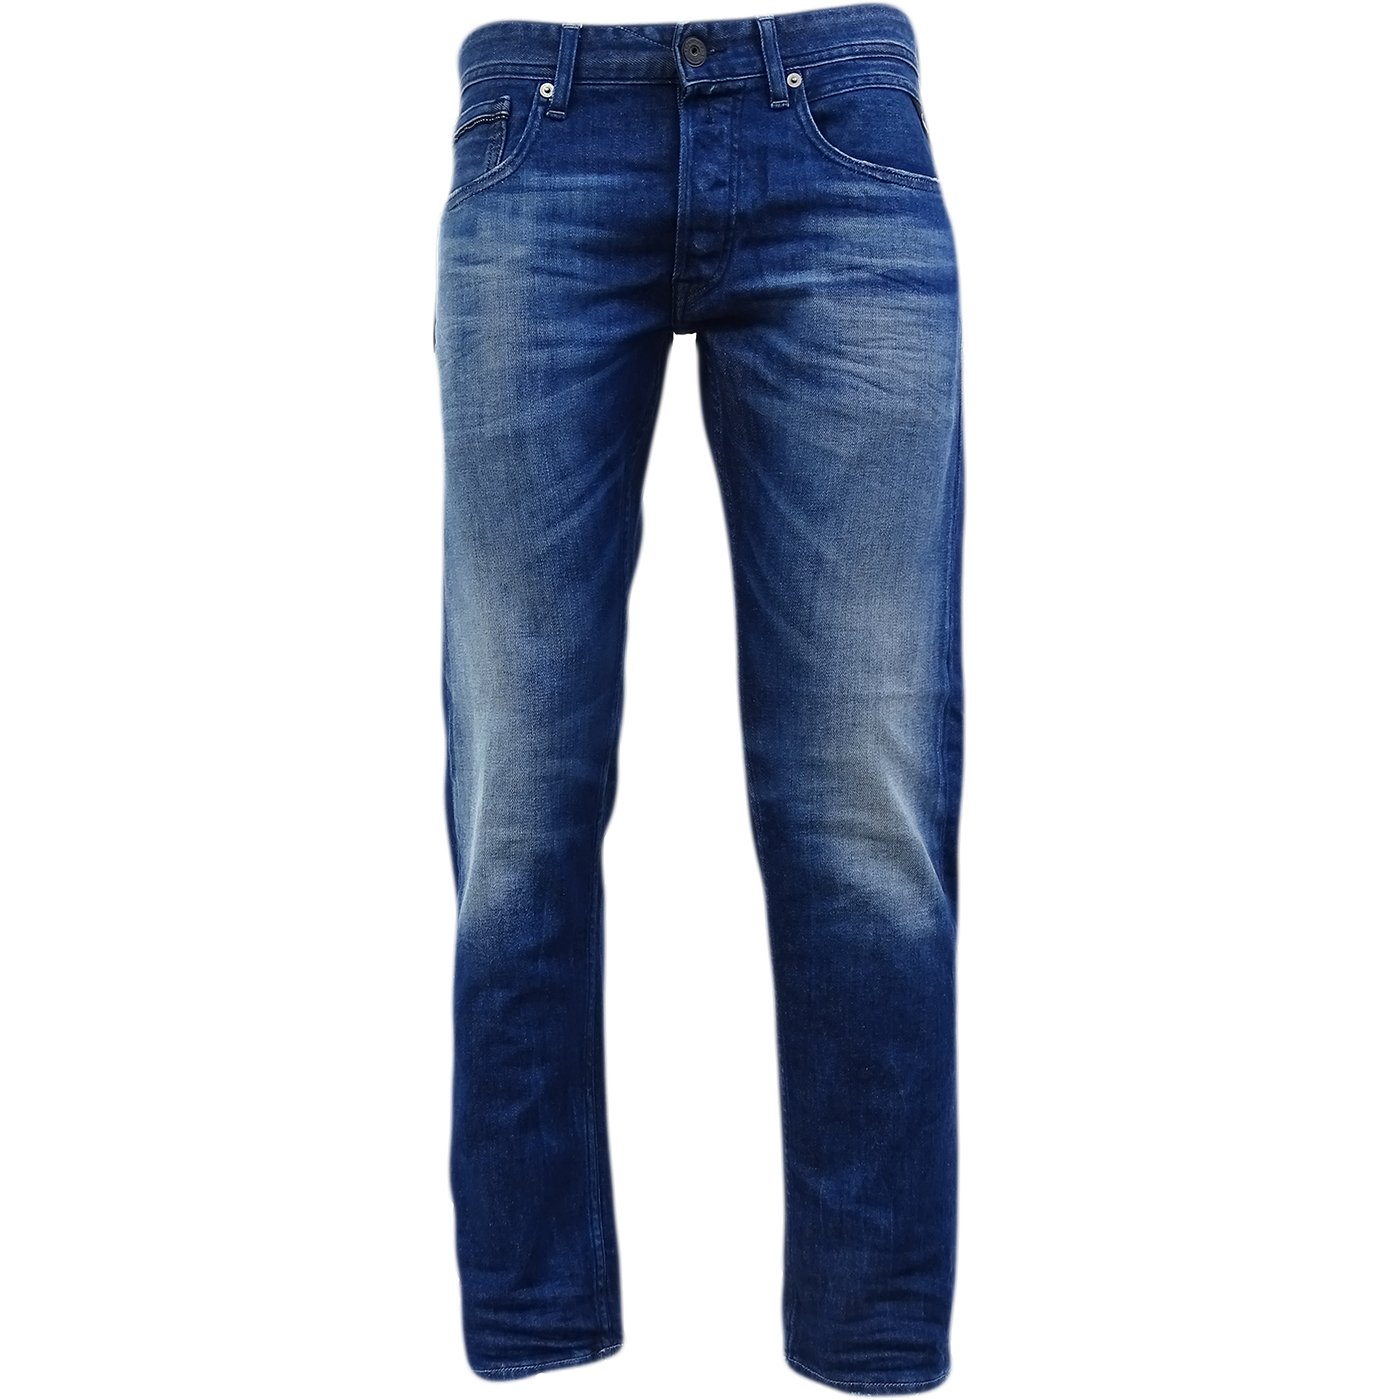 Replay Blue Grover Straight Leg Jean/Denim Pants - Ma972-953-941 34/30